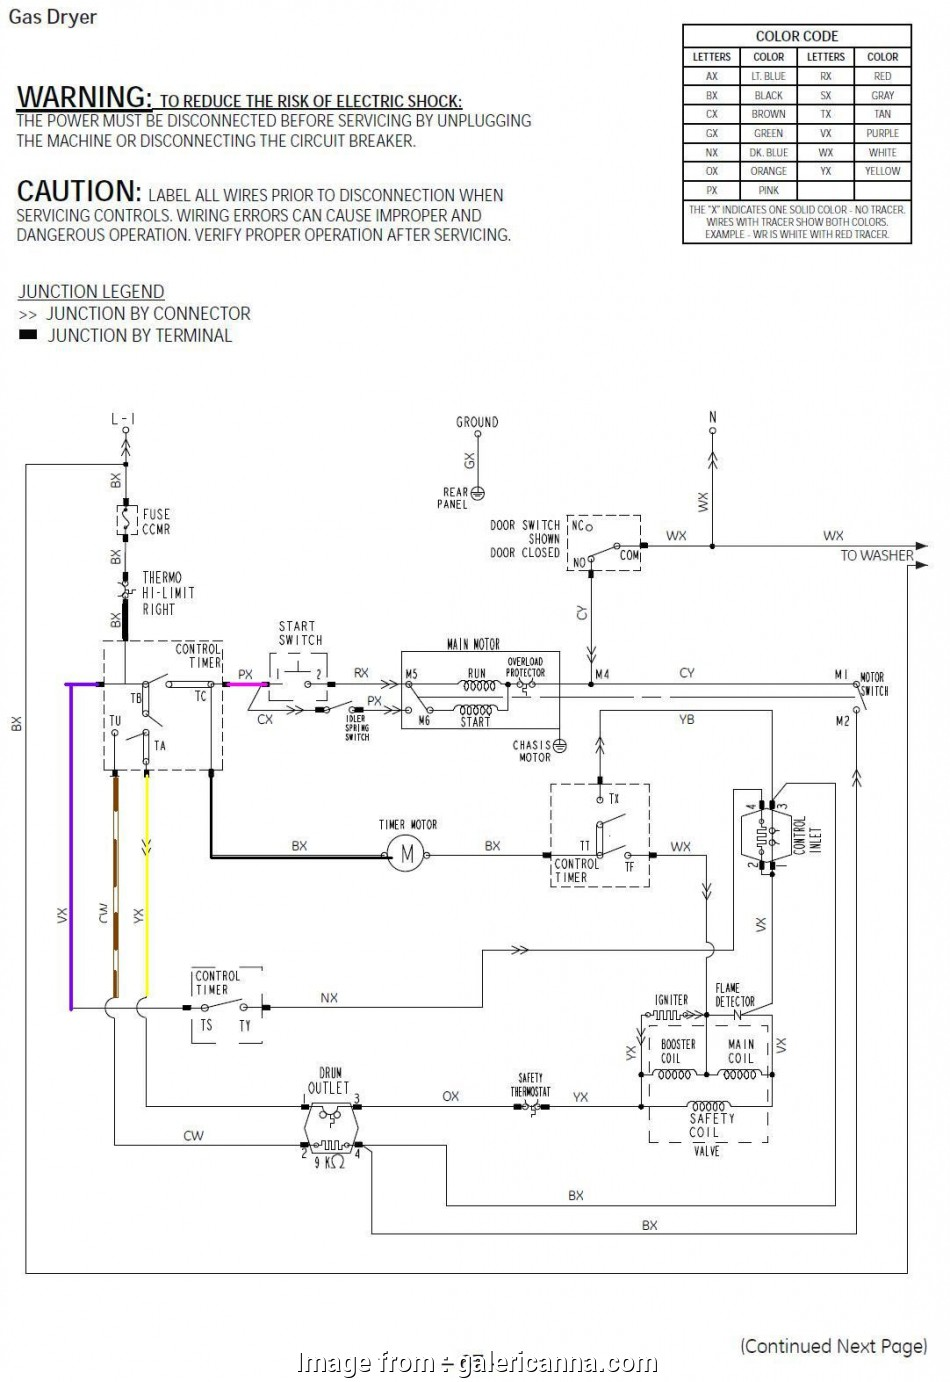 Fabulous Ge Dryer Motor Wiring Diagram Basic Electronics Wiring Diagram Wiring Cloud Hisonuggs Outletorg